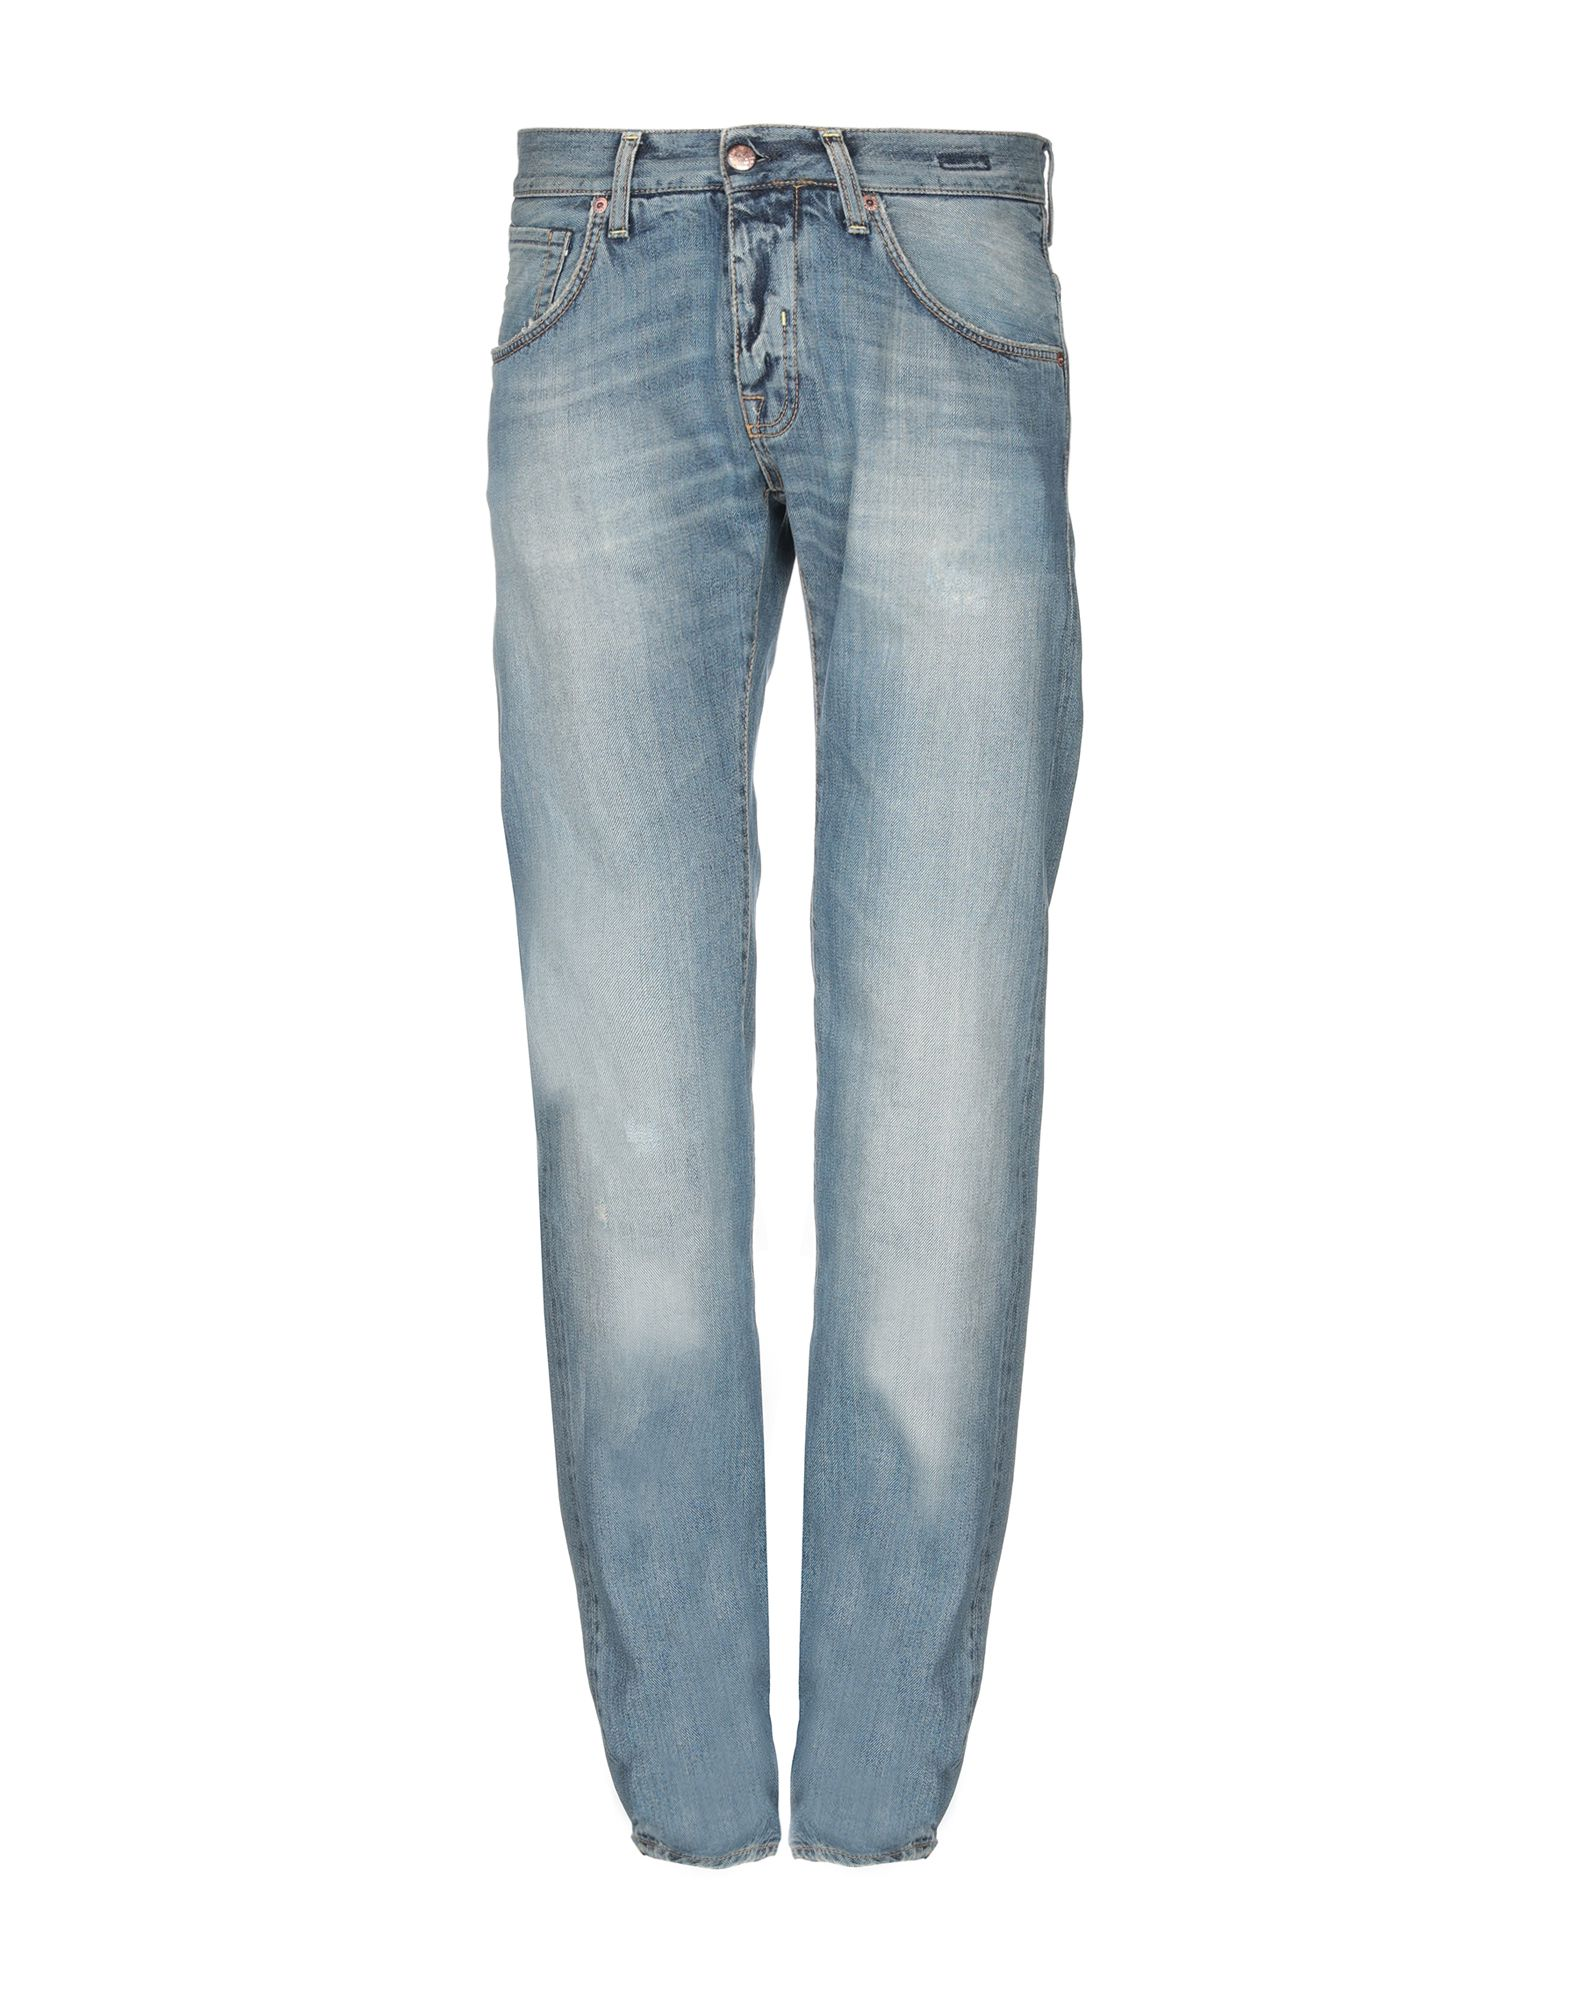 Pantaloni Jeans 2 Men Donna - Acquista online su